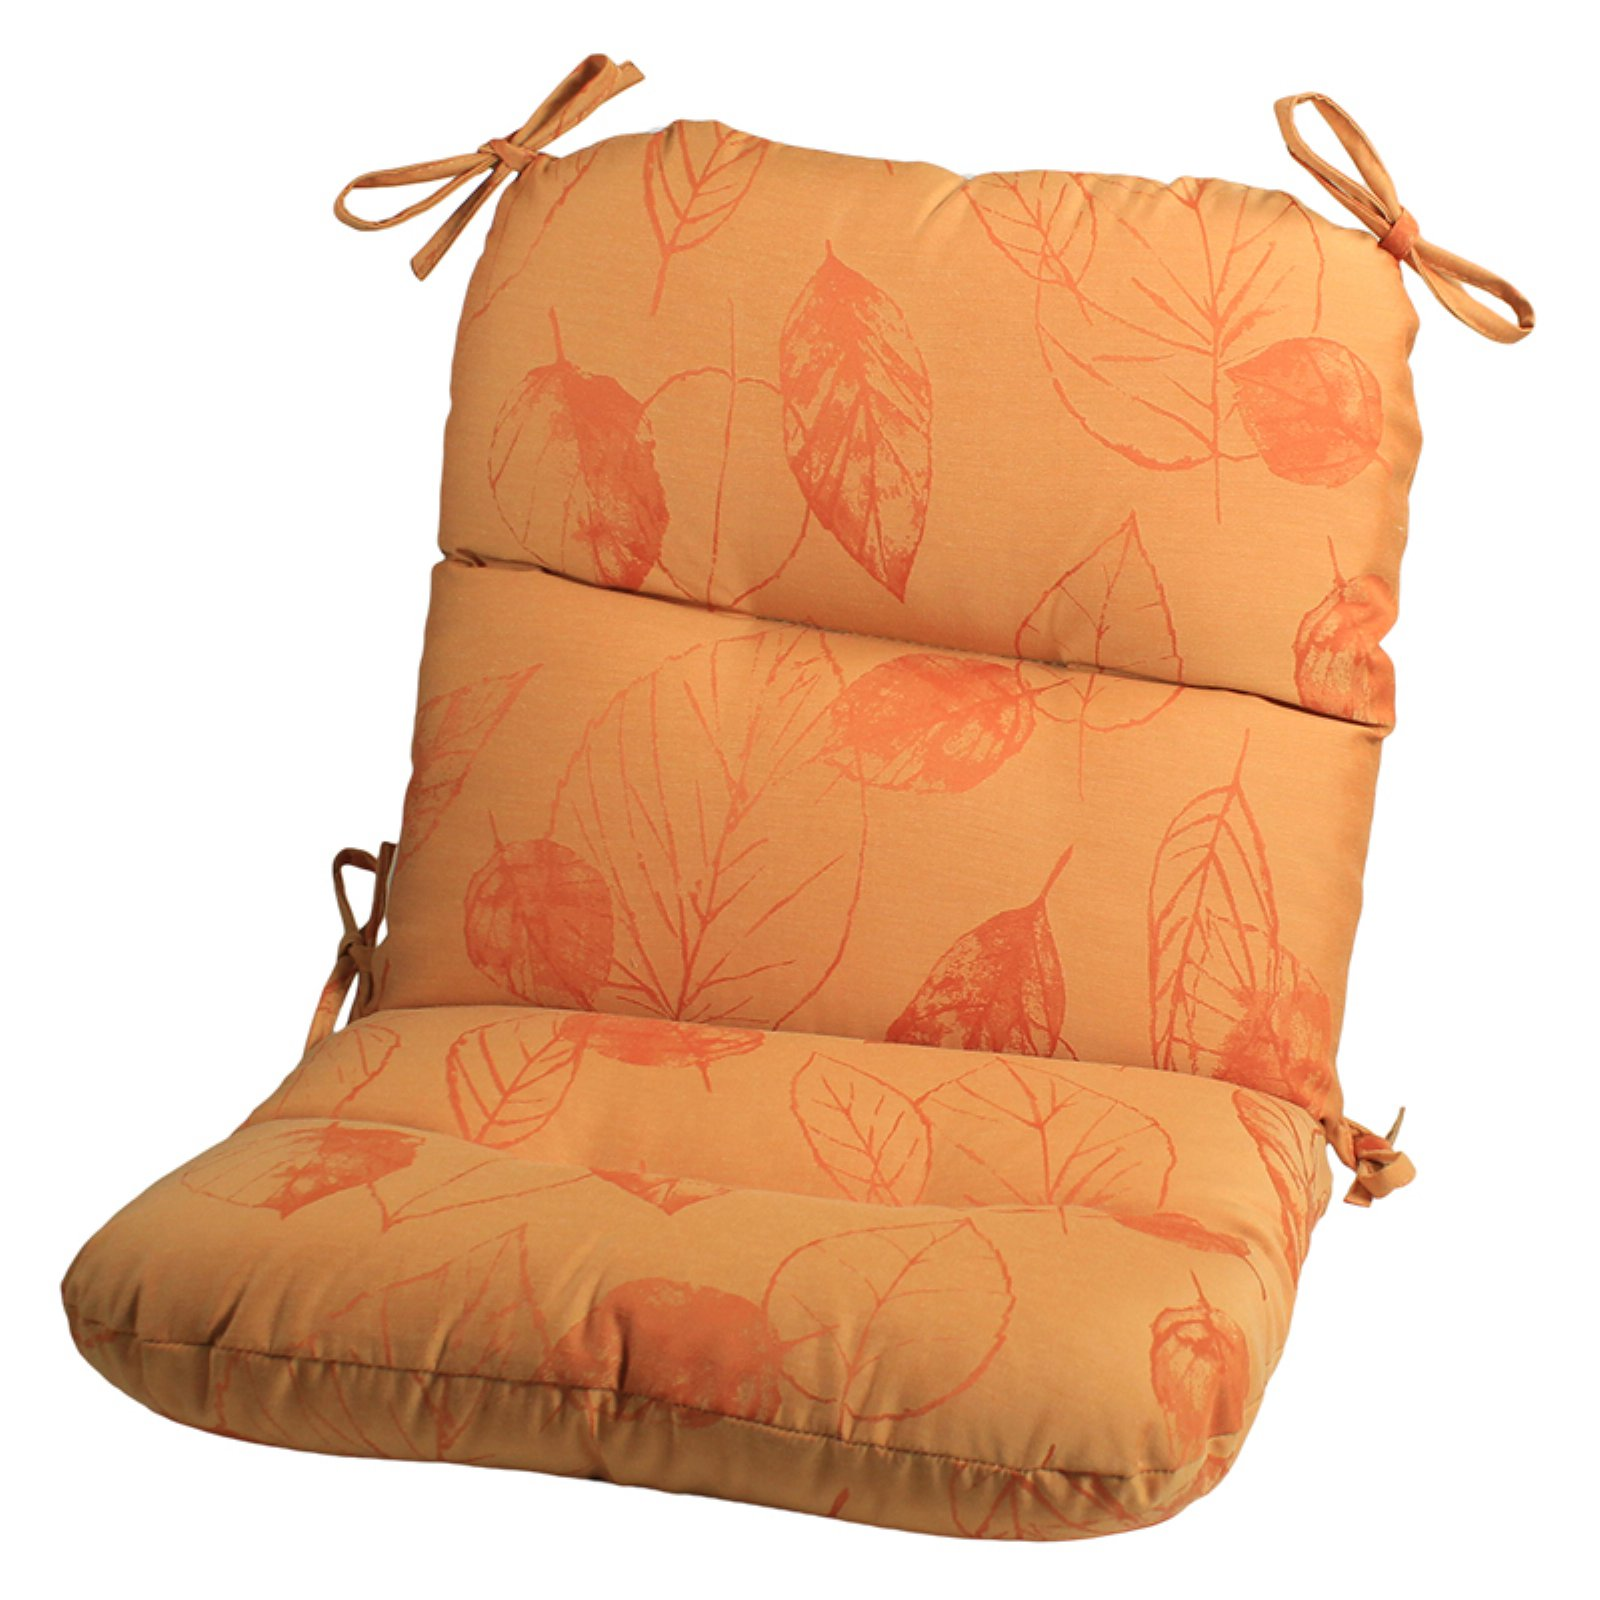 Comfort Classics Hinged Seat and Back Sunbrella Chair Cushion - Set of 4